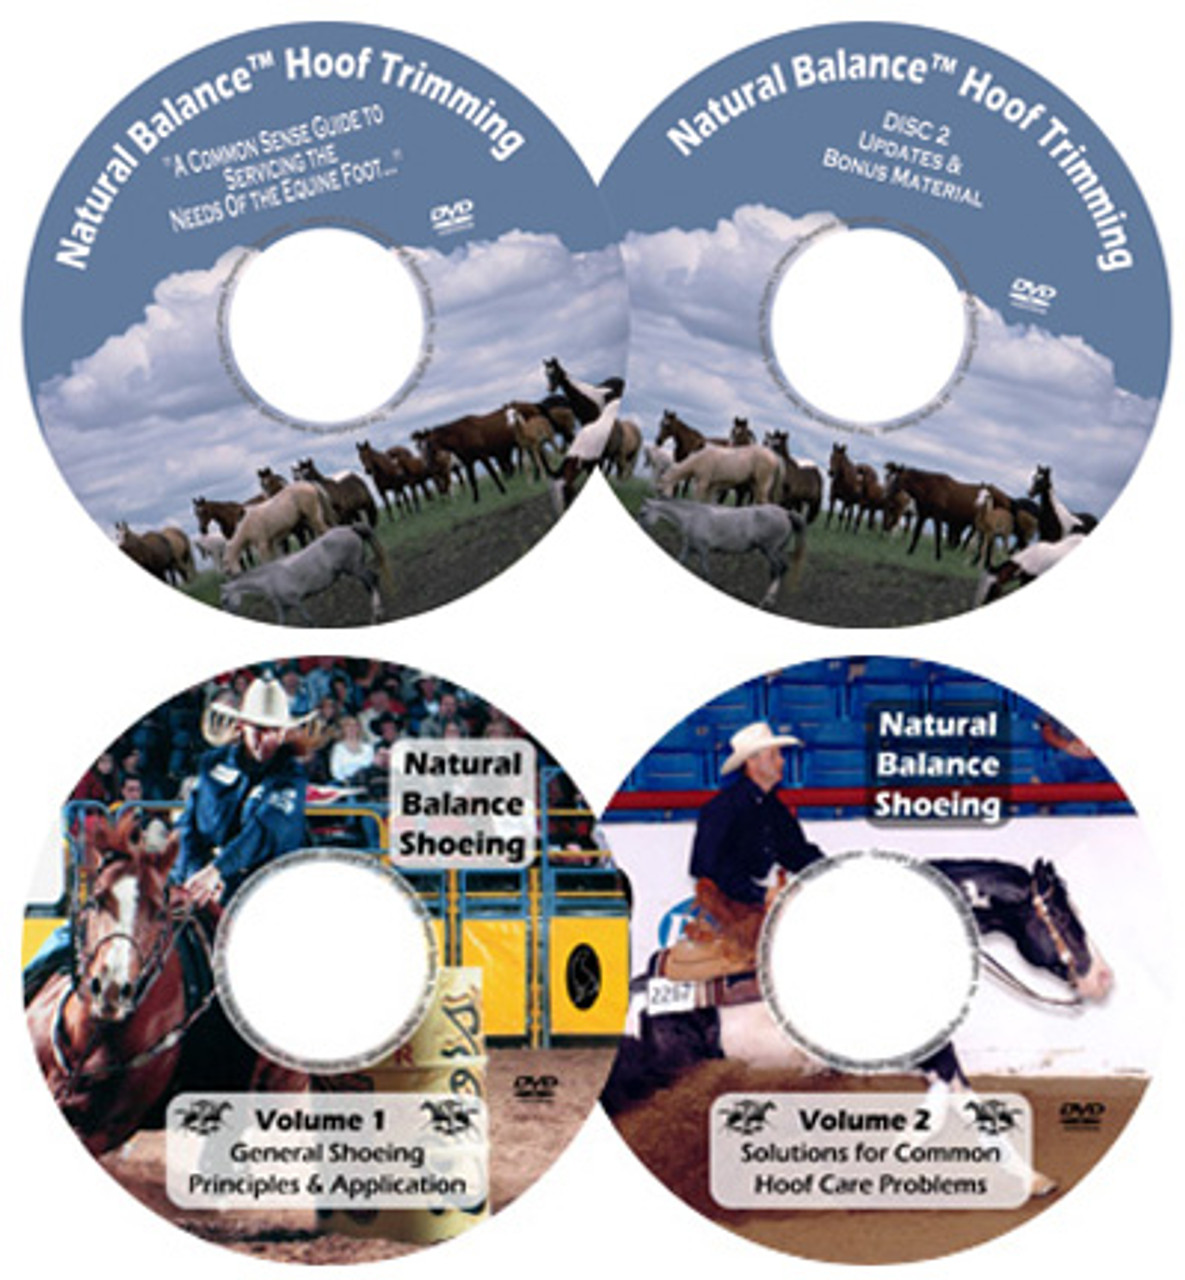 hight resolution of  nb hoof trimming nb shoeing dvd combo pack